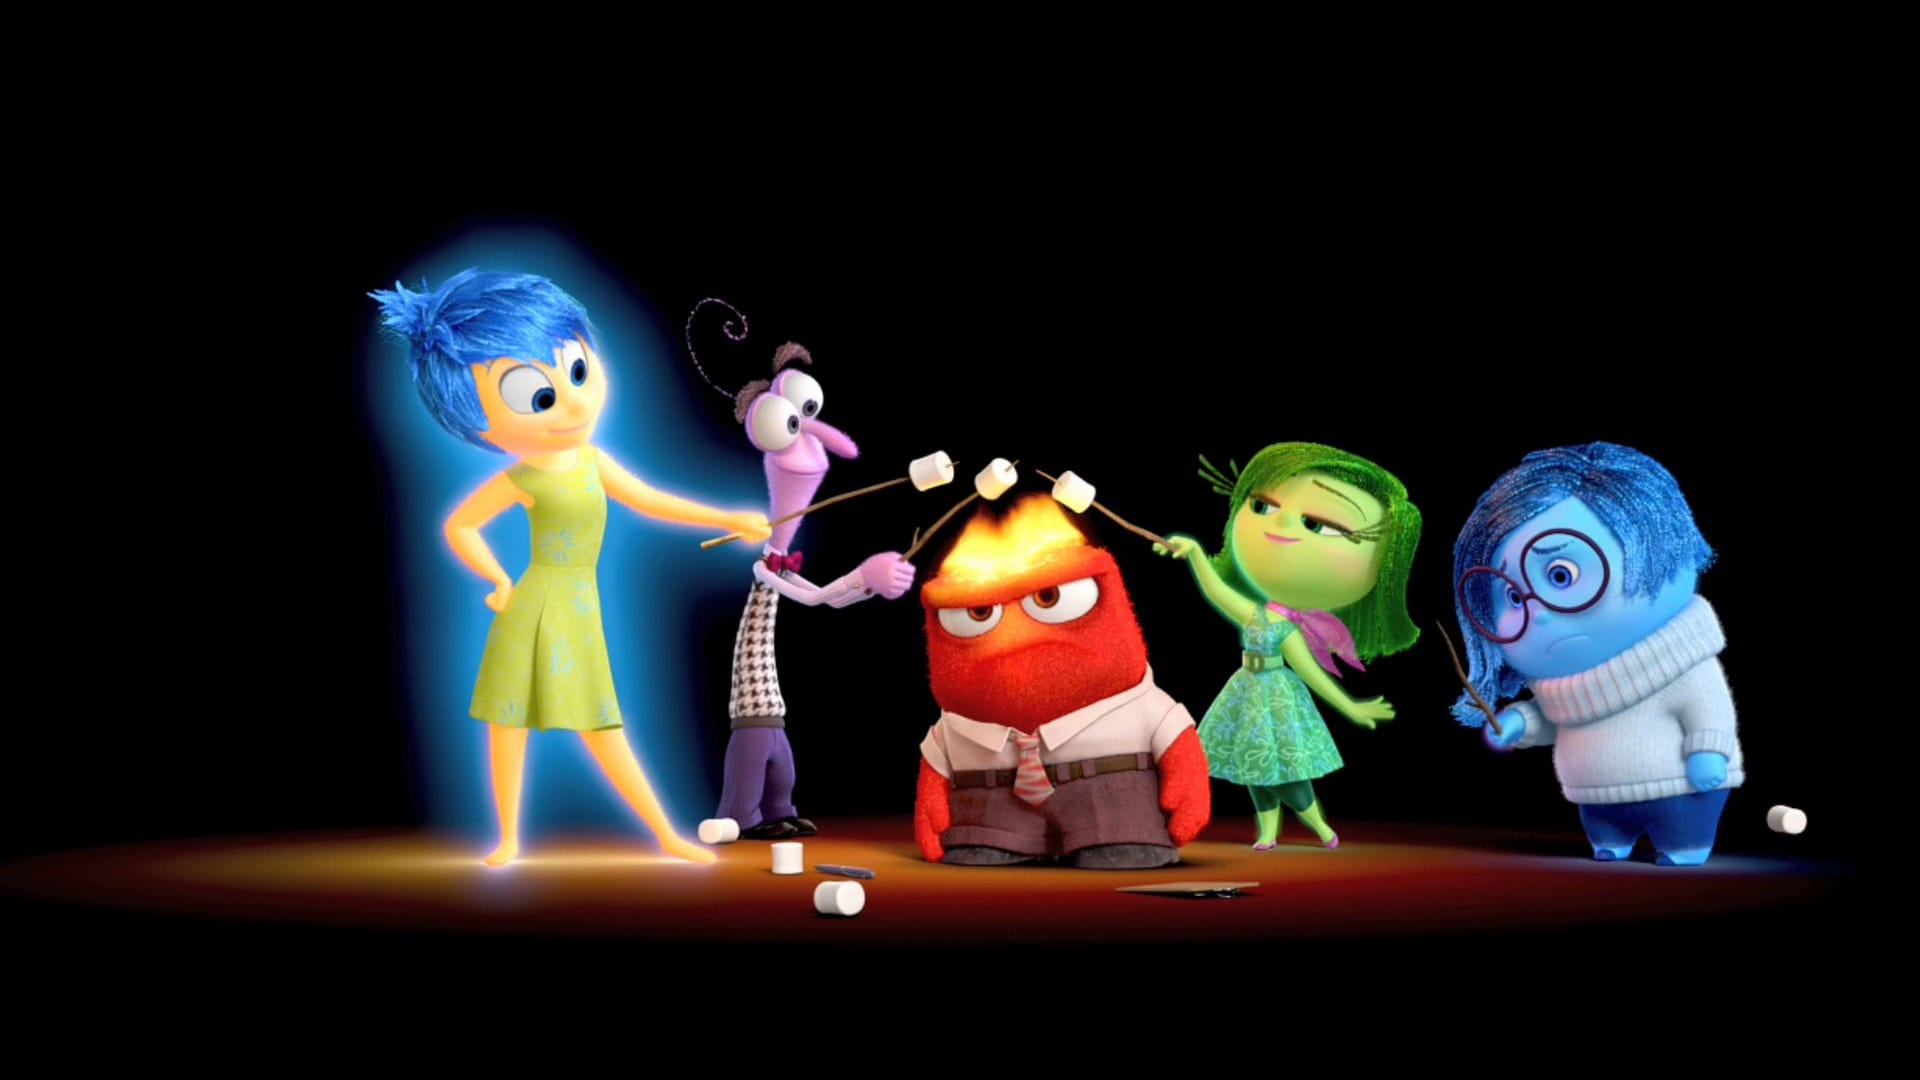 Inside Out HQ wallpapers